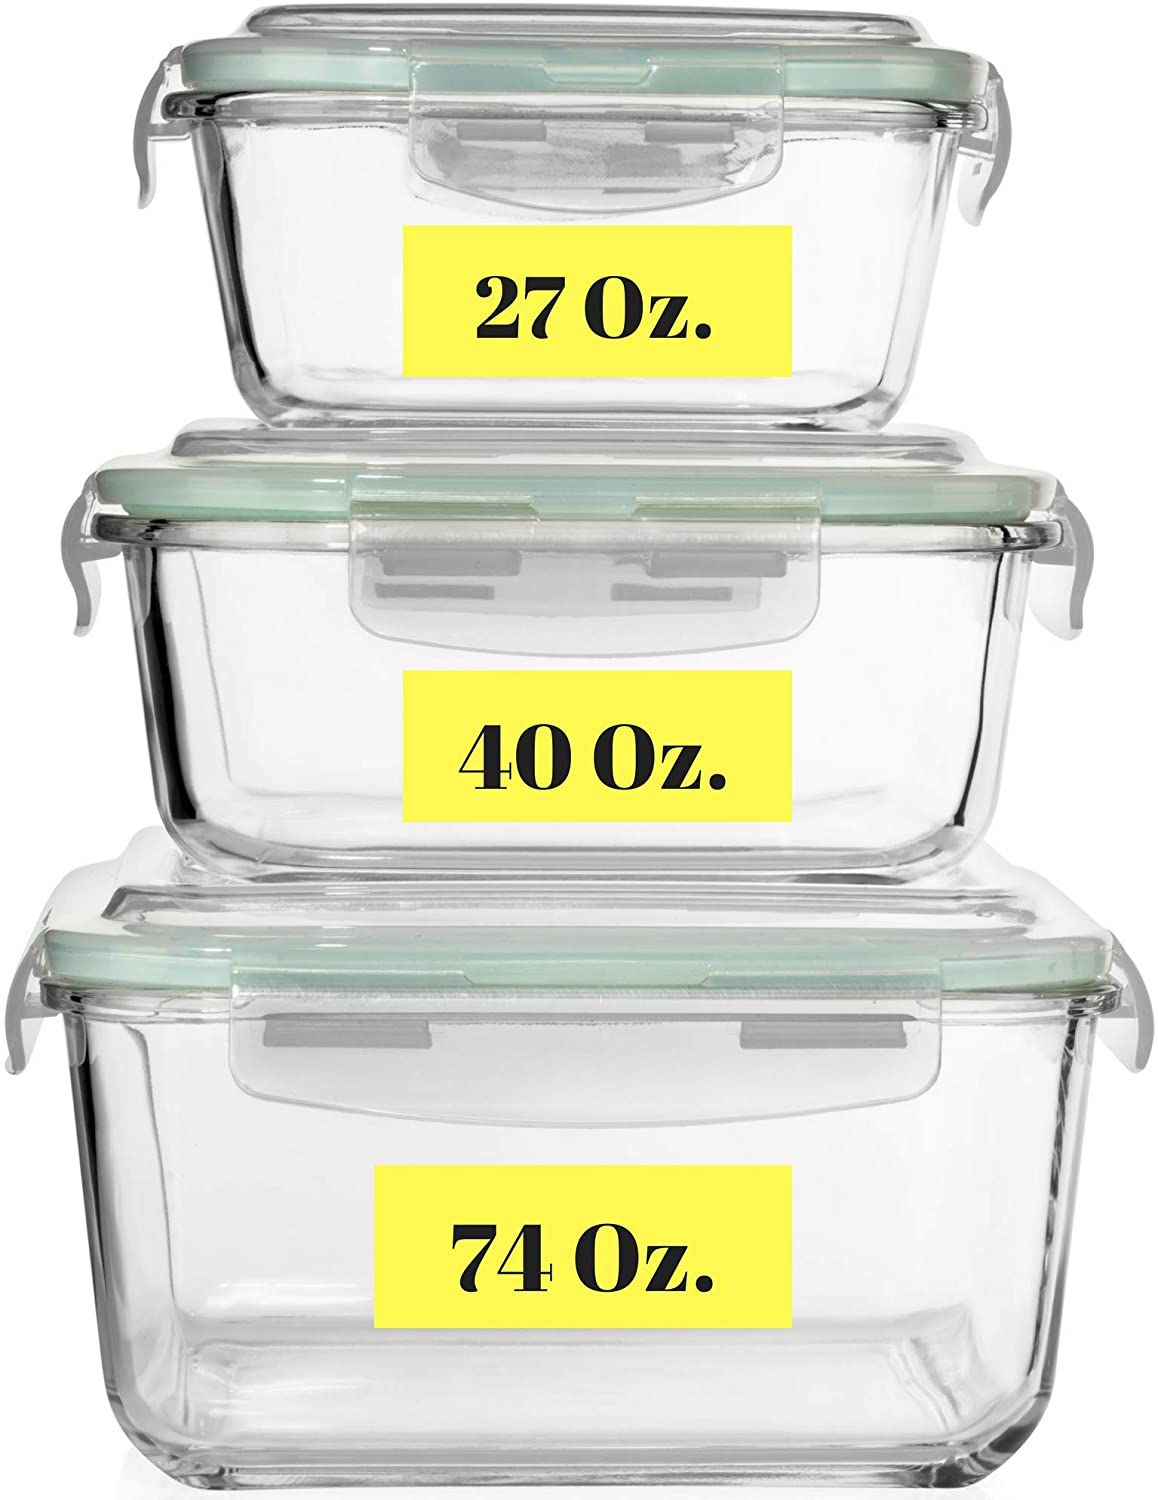 Razab HomeGoods Extra Large Glass Food Storage Containers with Airtight Lids